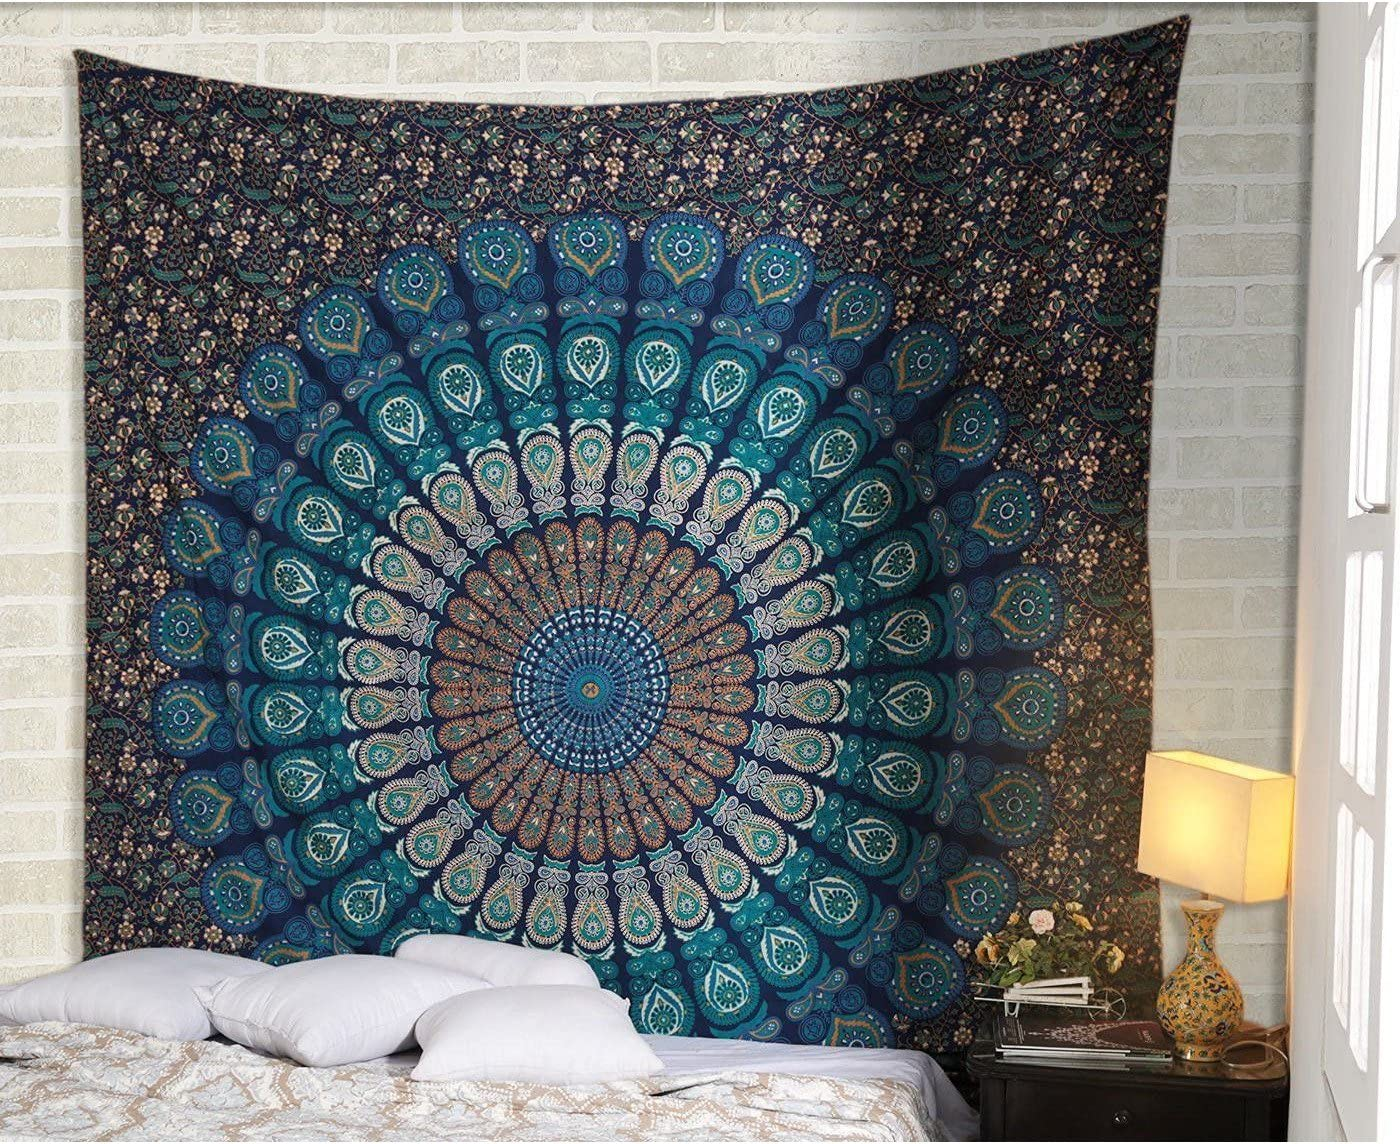 Handmade Mandala Tapestry Gypsy Hippie Bedding Bohemian Ethnic 54 X 84 Inches Large Queen Size Blue